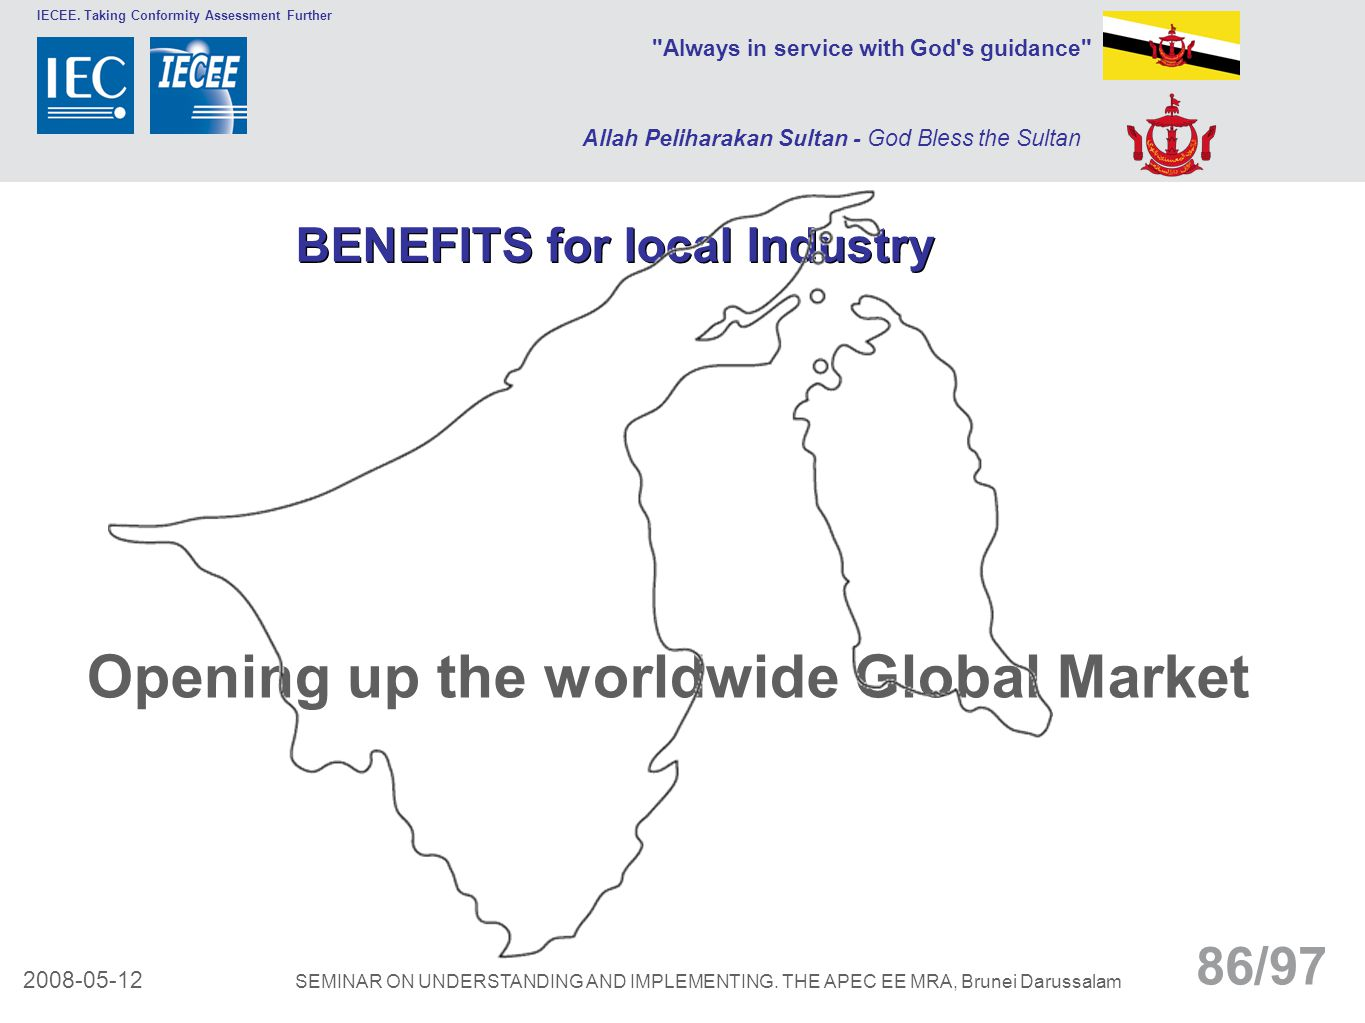 Opening up the worldwide Global Market